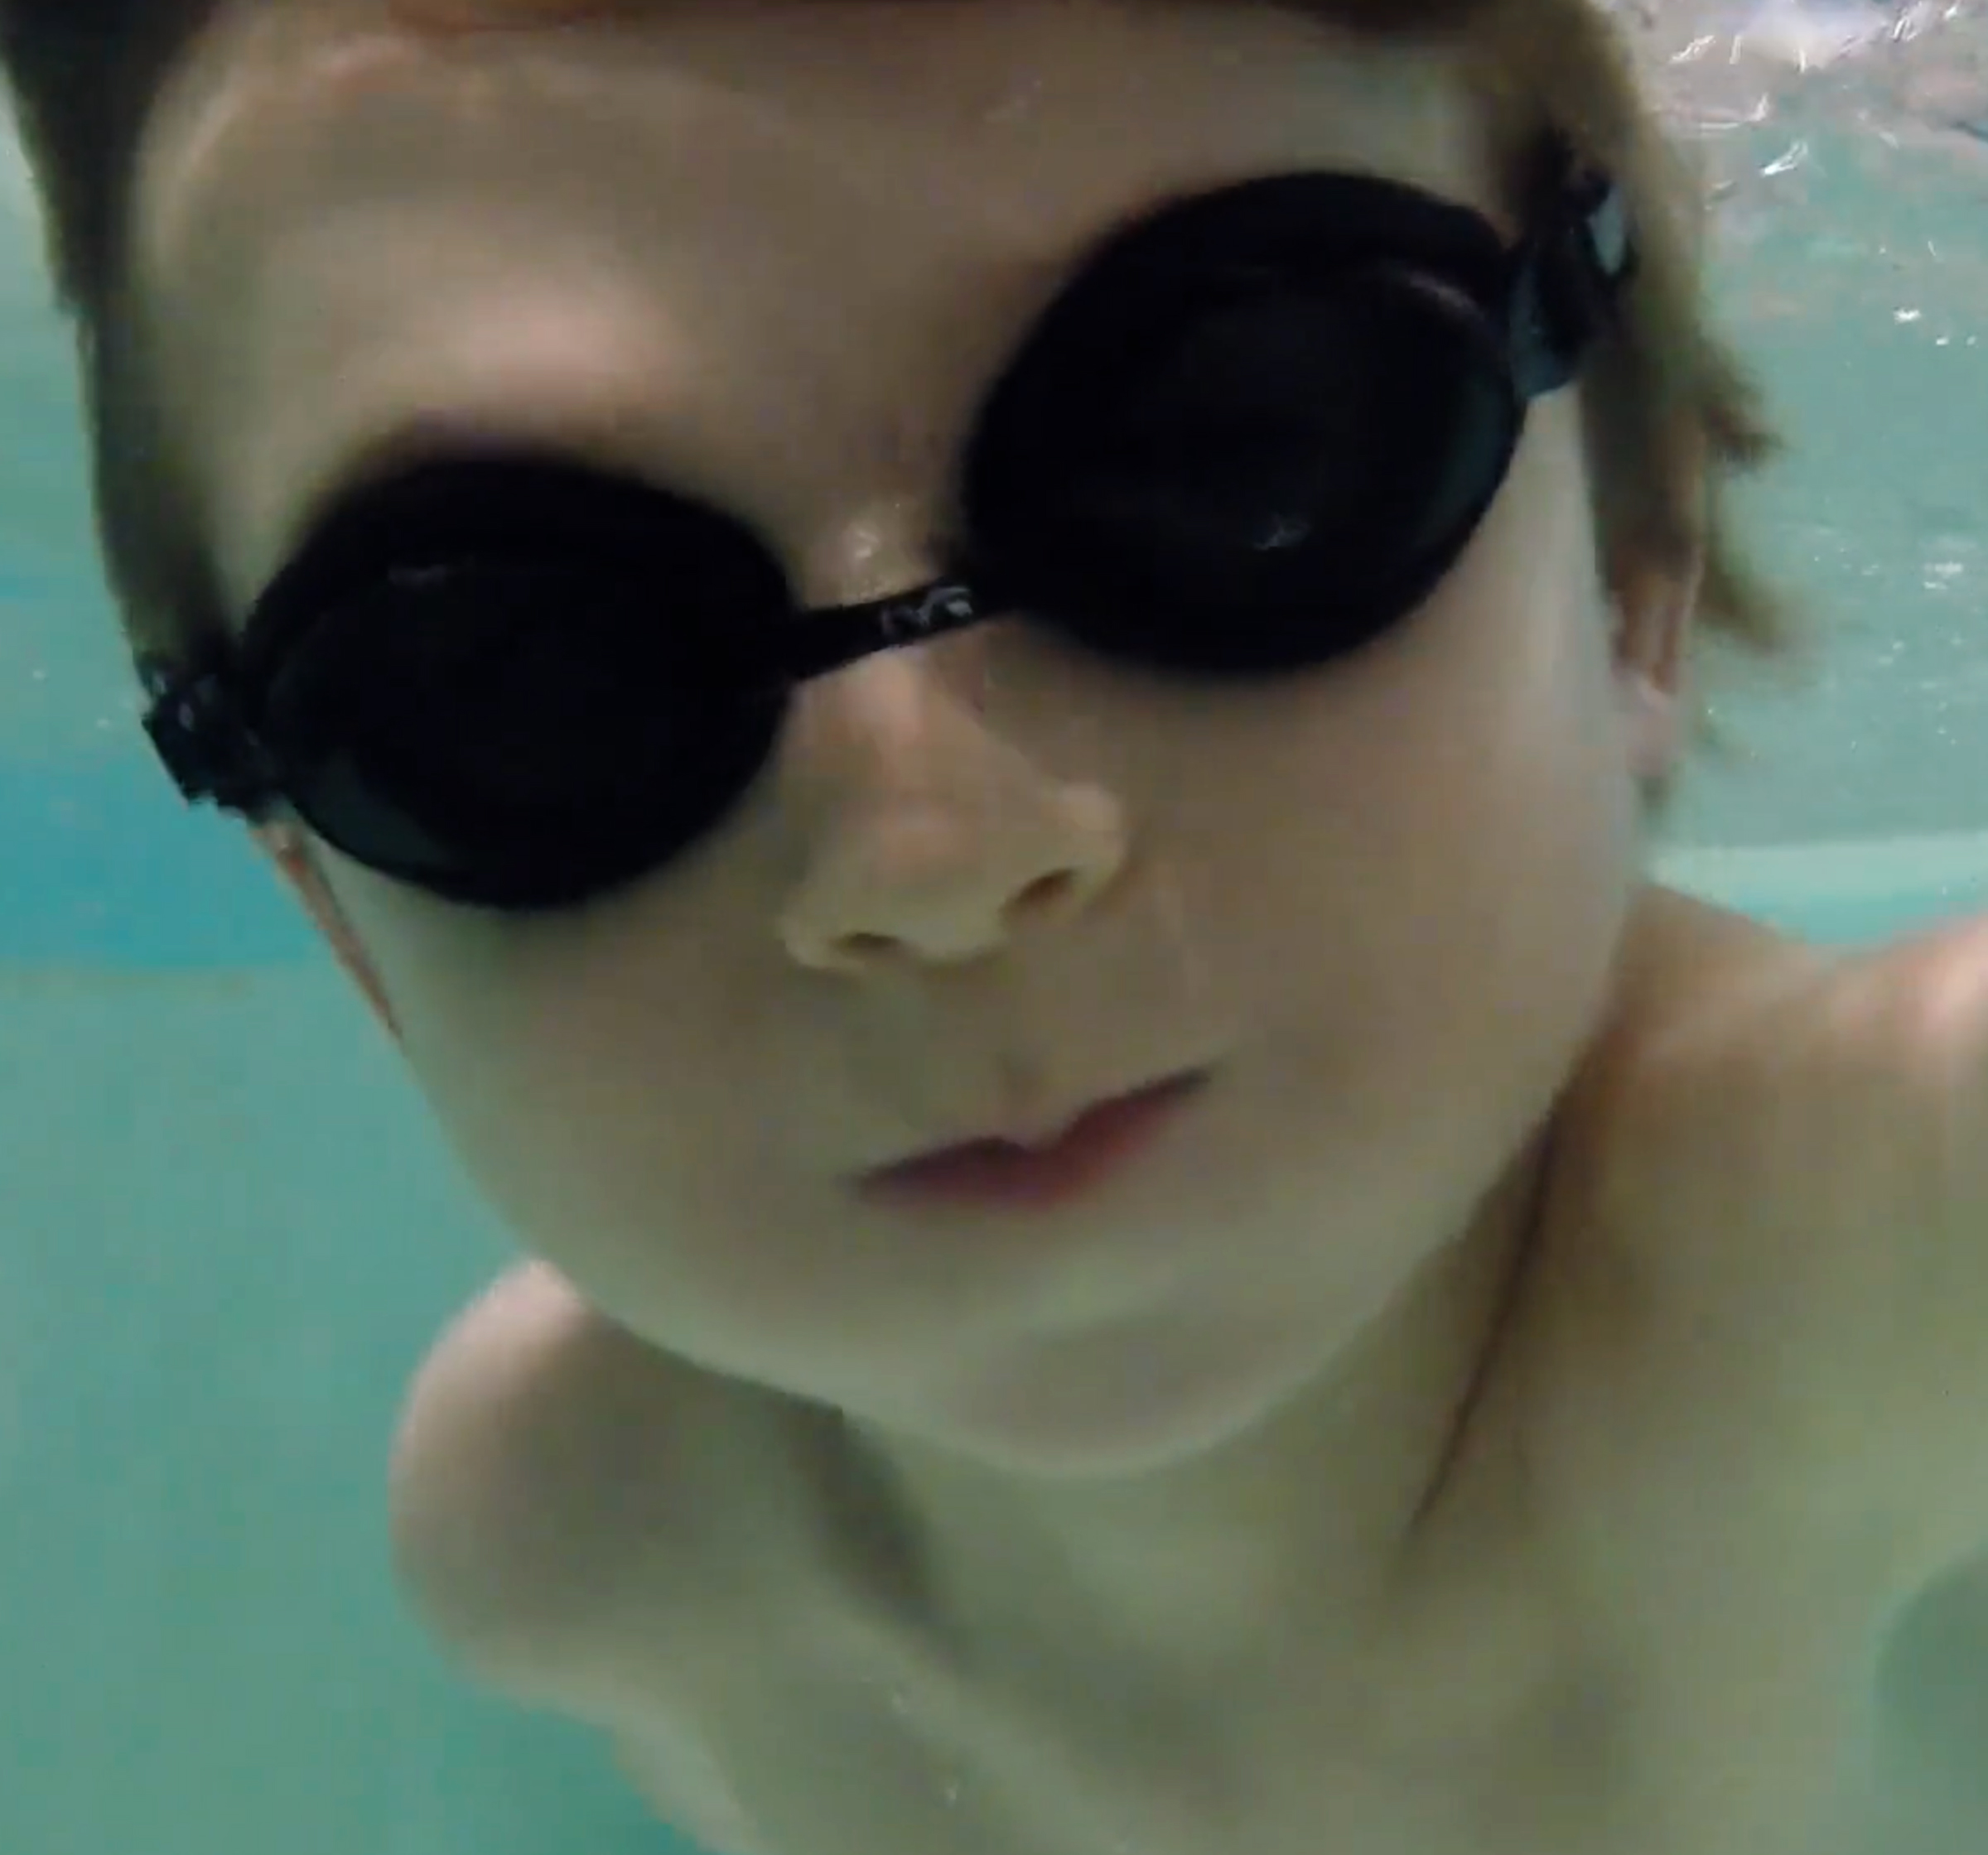 Boy with goggles underwater looking at the camera